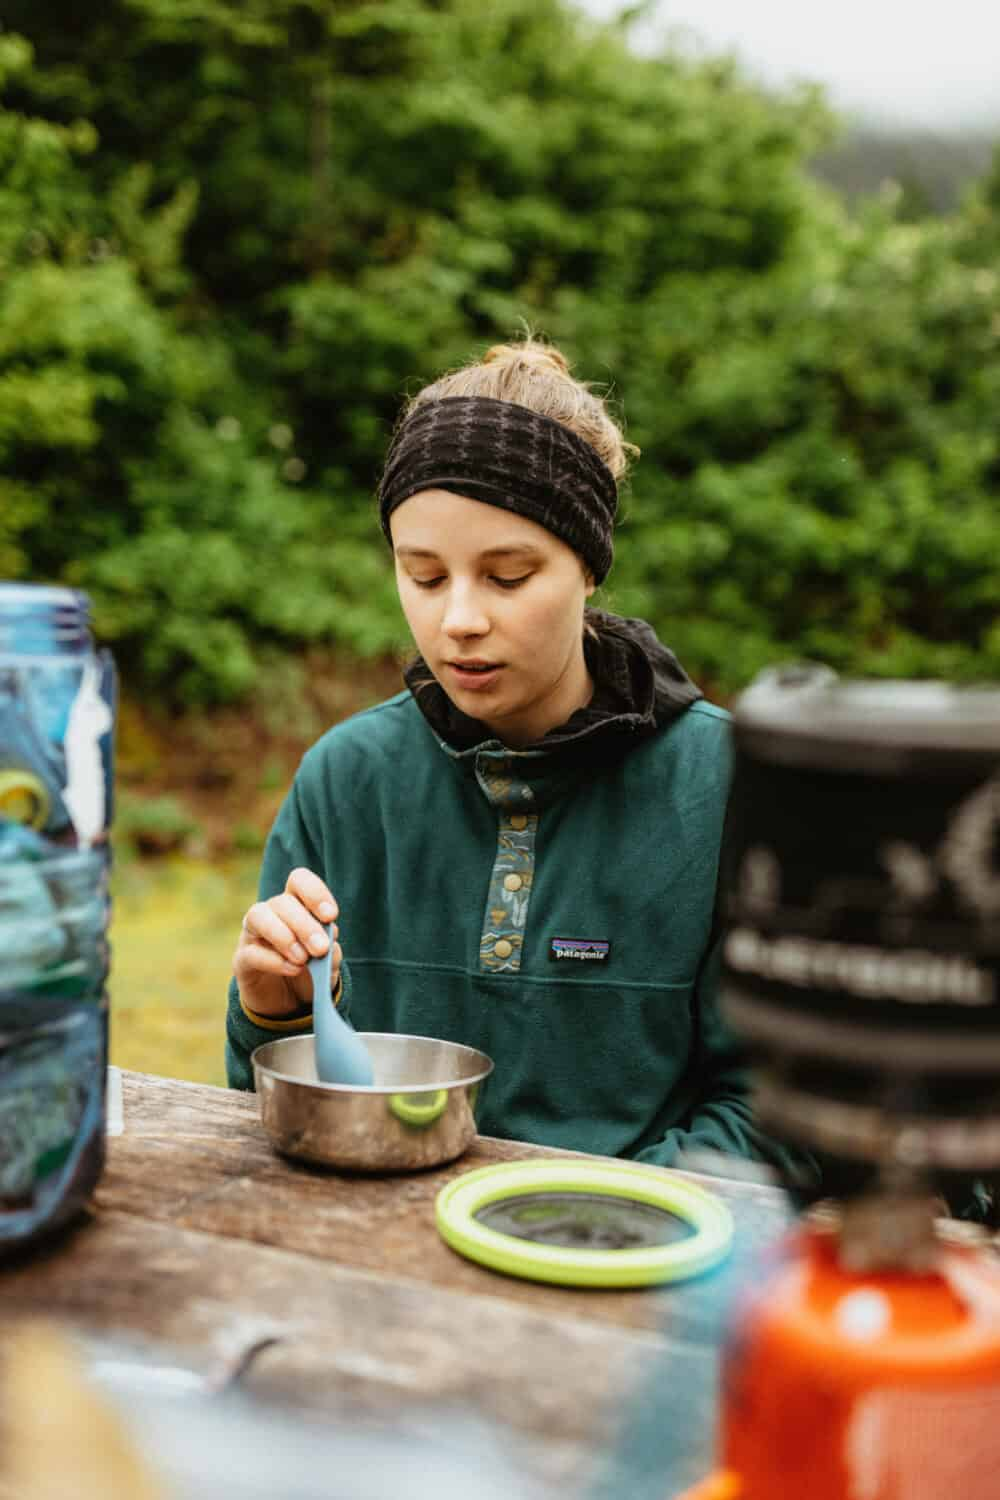 Katie eating camping meals while backpacking